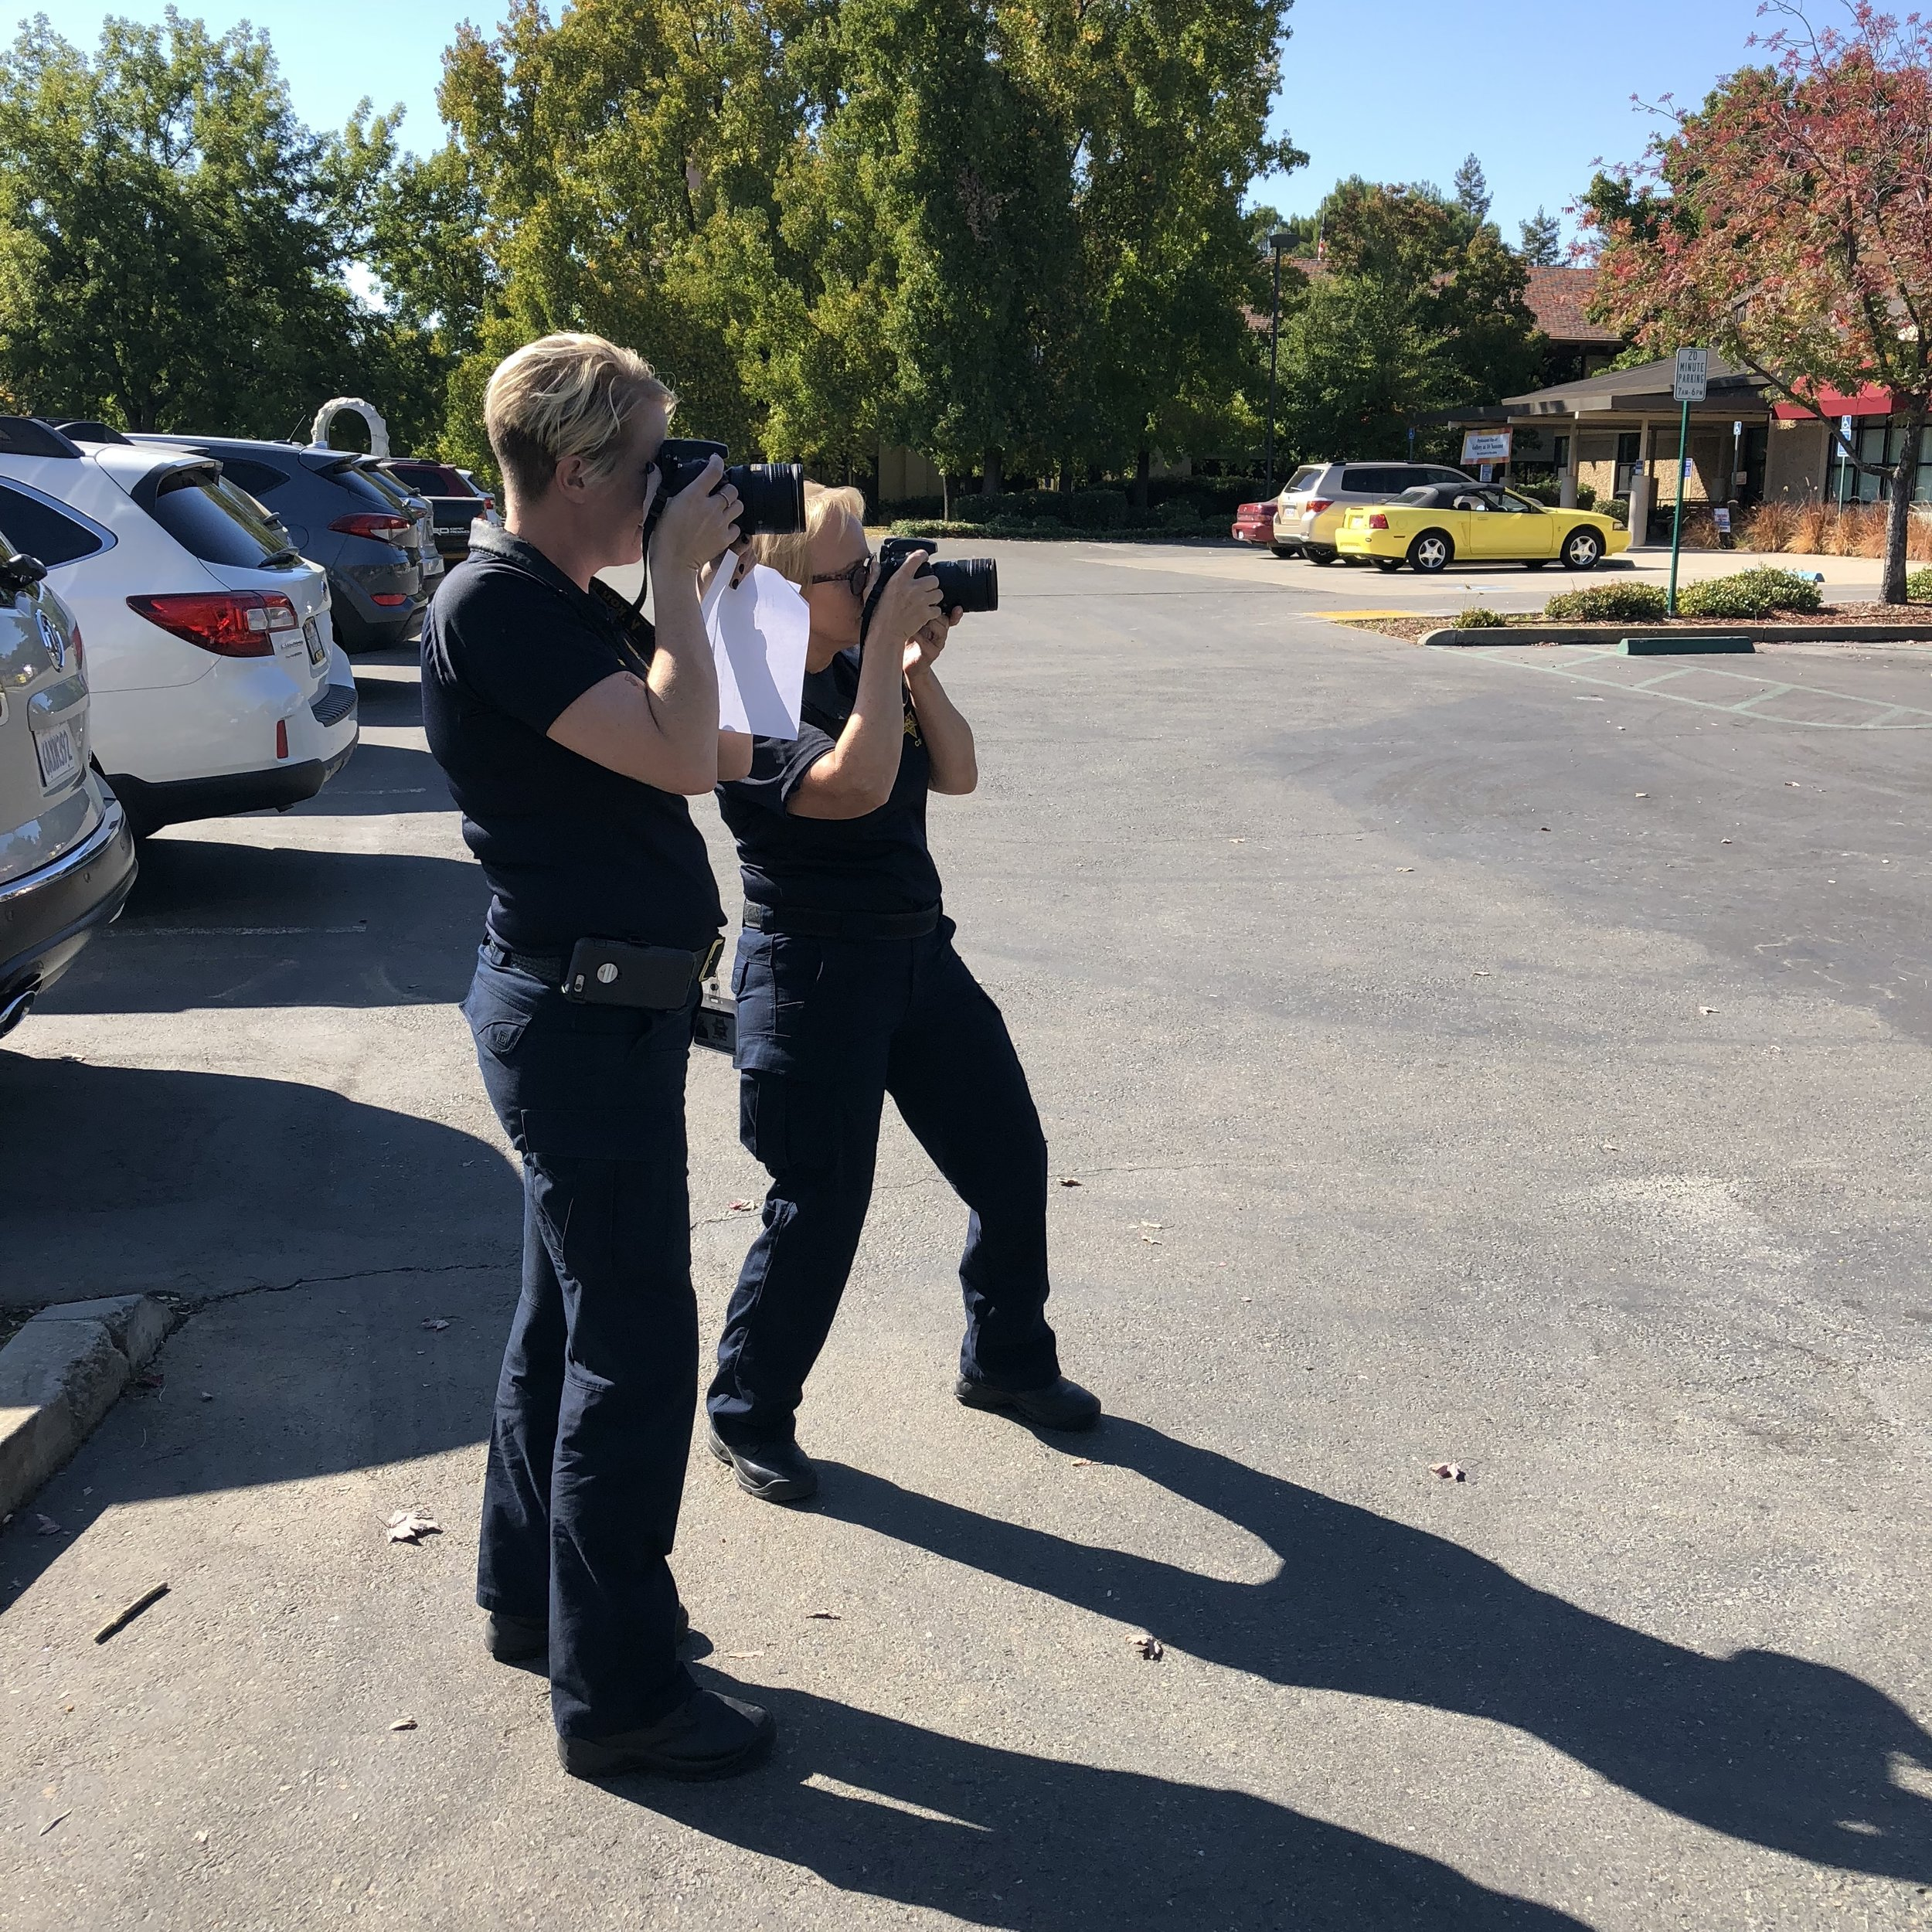 BASIC CRIME SCENE Photography - This 40 hour course is designed for forensic professionals & law enforcement officers with beginner to intermediate experience. Course material and practical exercises focus on camera operation and proper crime scene photo composition. Topics include shooting in manual, evaluation exposure, using flash, crime scene photography, vehicle photography, equipment, and more.